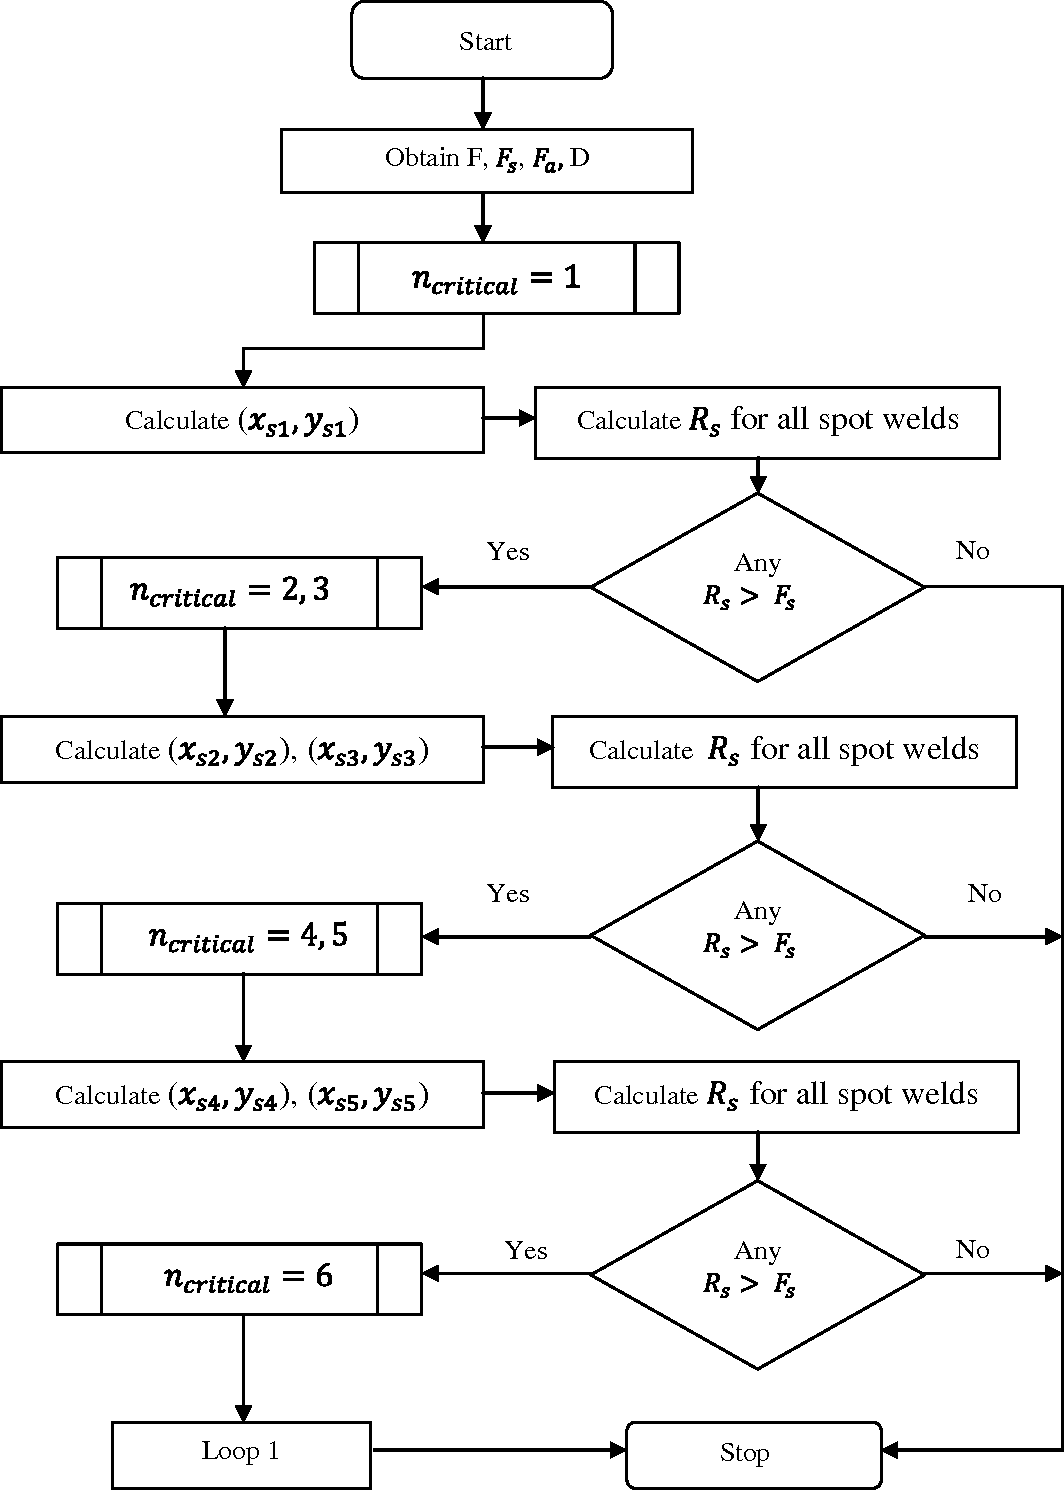 Process Planning For Rapid Manufacturing Of Plastic Injection Mold Flow Diagram Reaction Moulding Figure 315 A Determining Number And Location Spot Weld Algorithm Chart